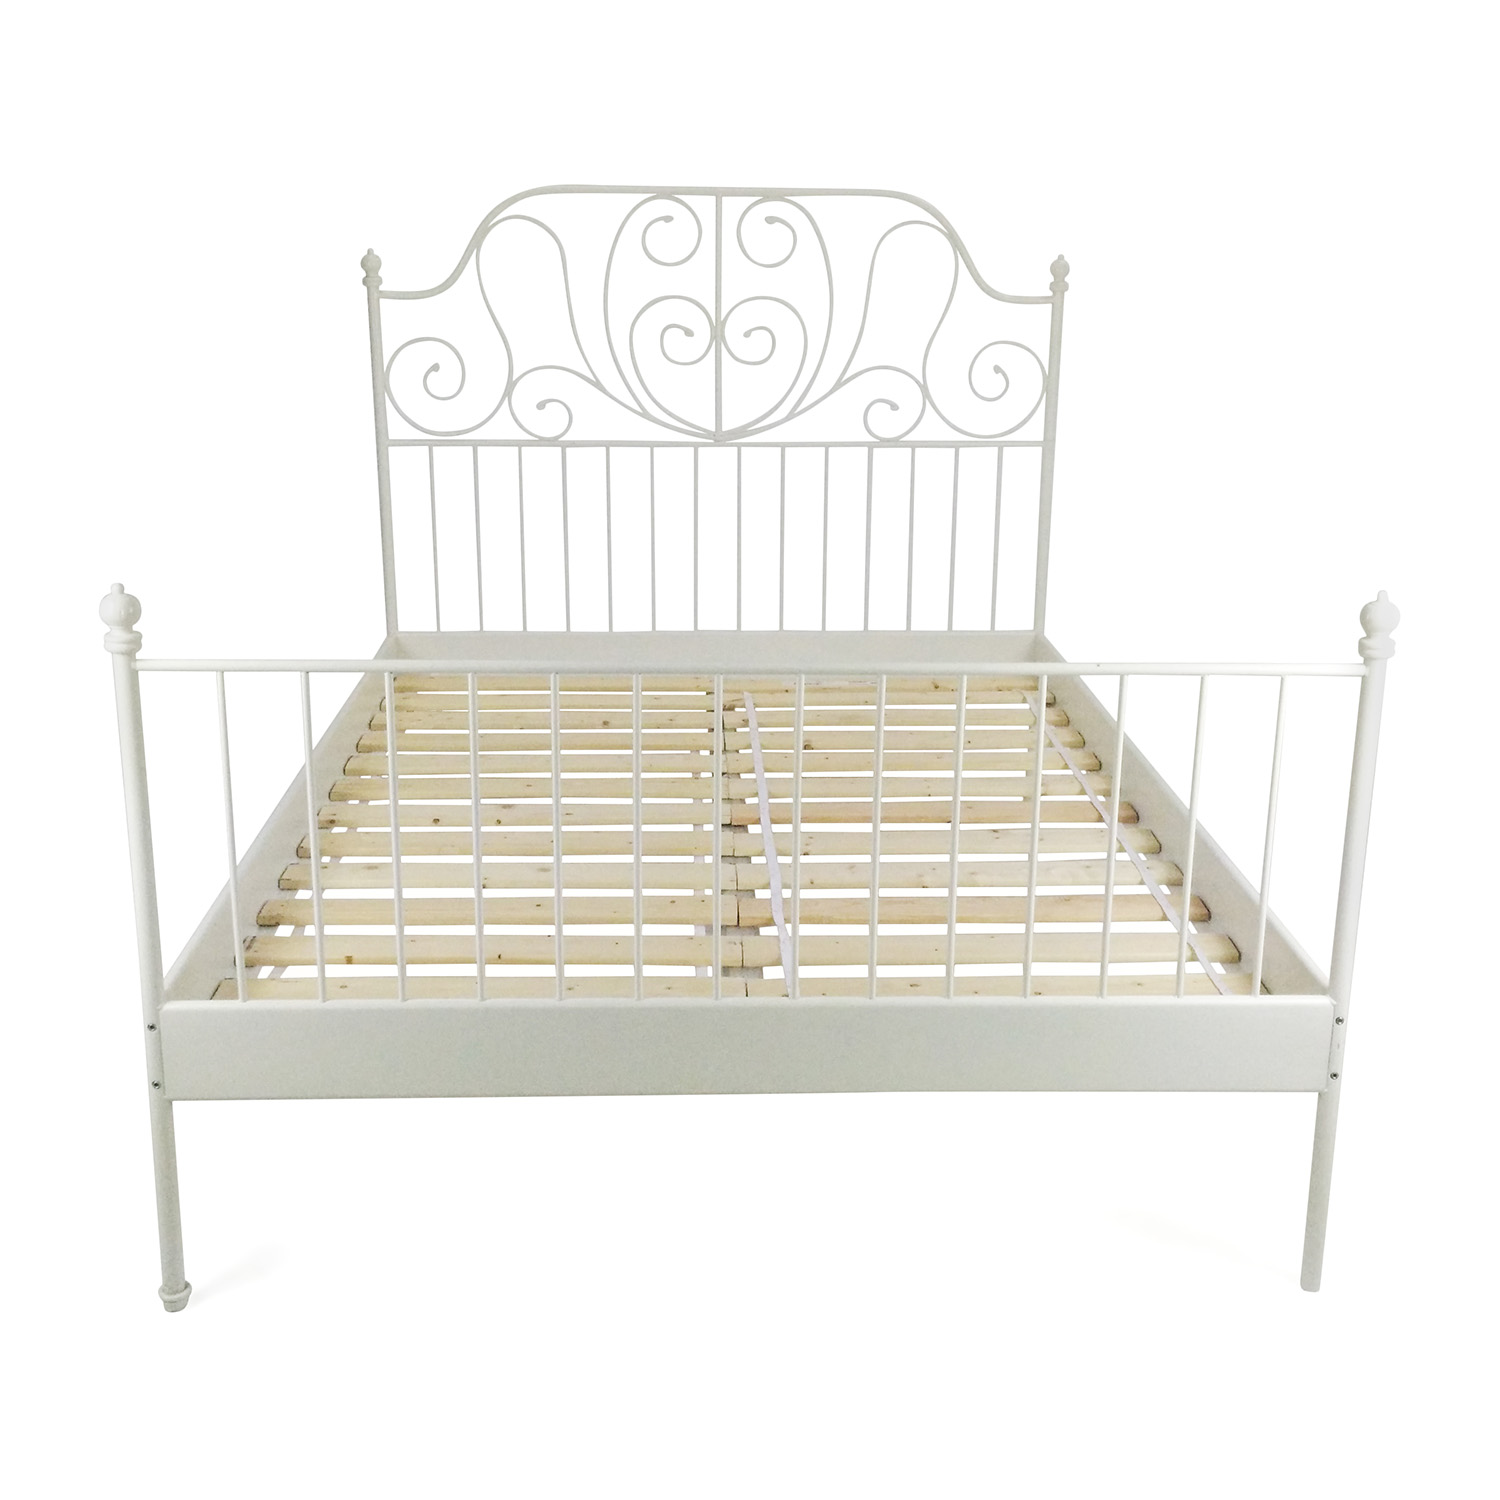 Ikea queen bed ikea mandal bed queen ikea bed slats for High bed frame queen